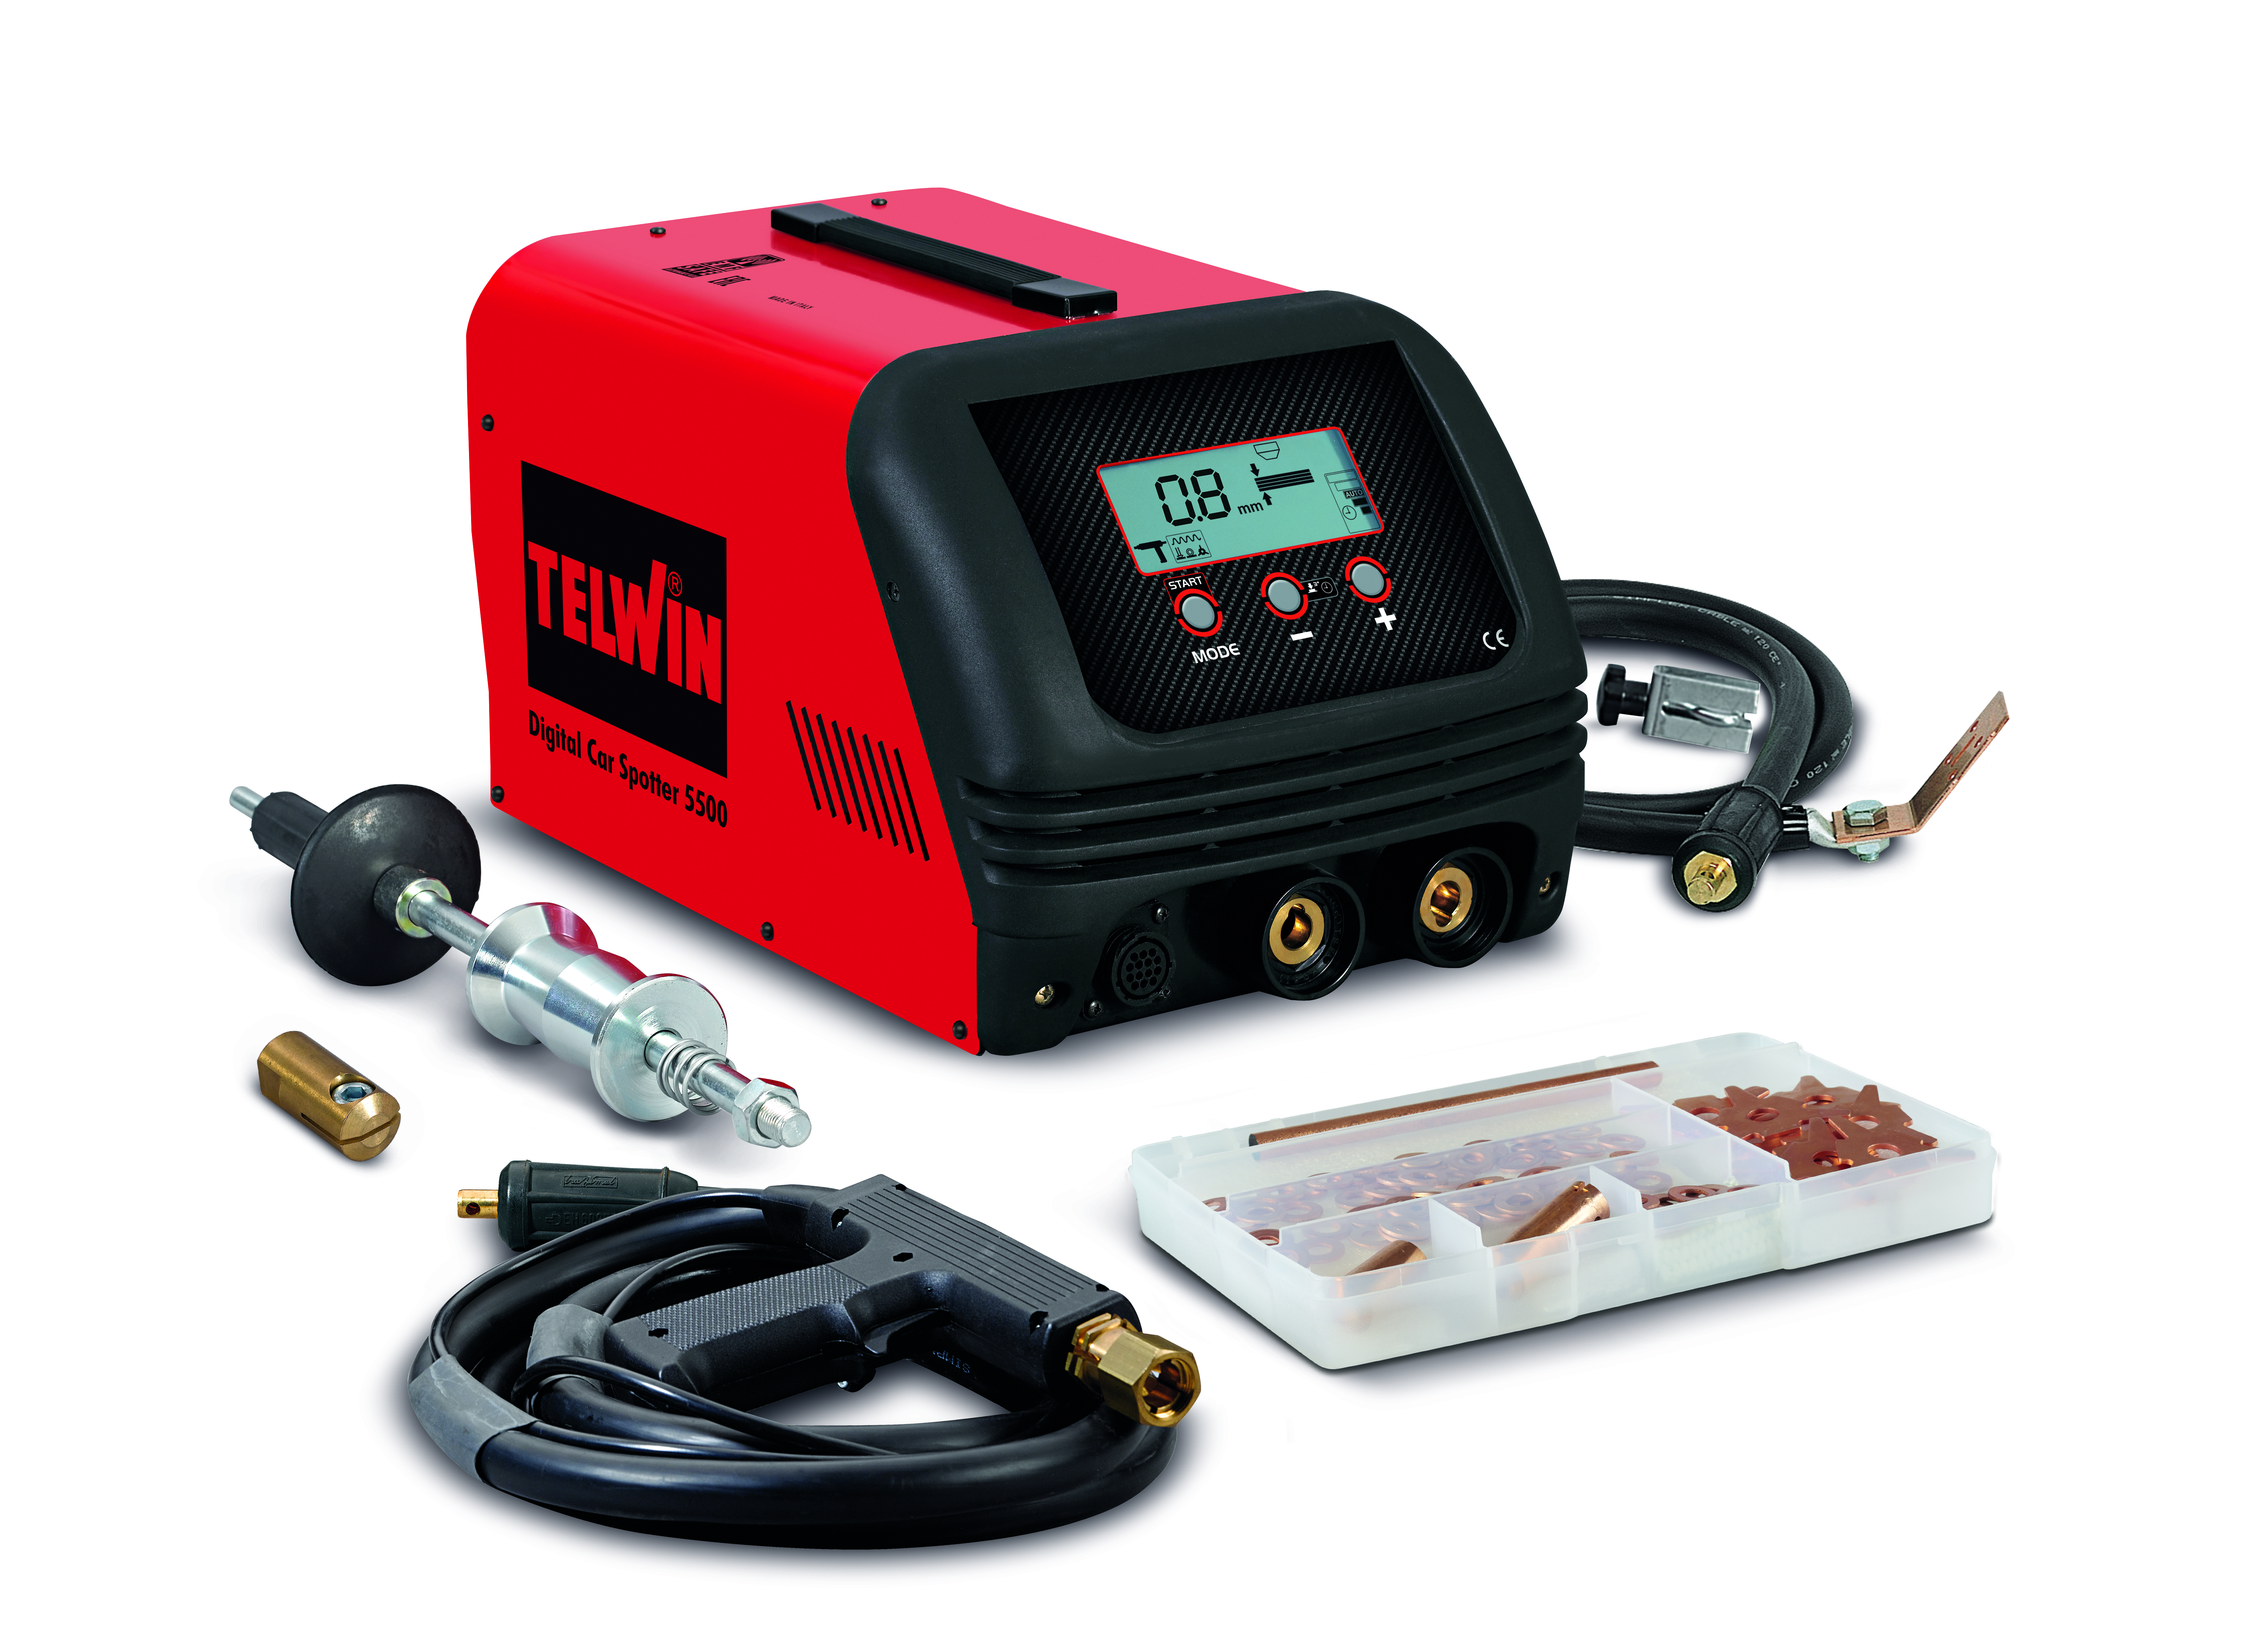 TELWIN 823219 - DIGITAL CAR SPOTTER 5500 230V + ACC, Spot Welding Machine